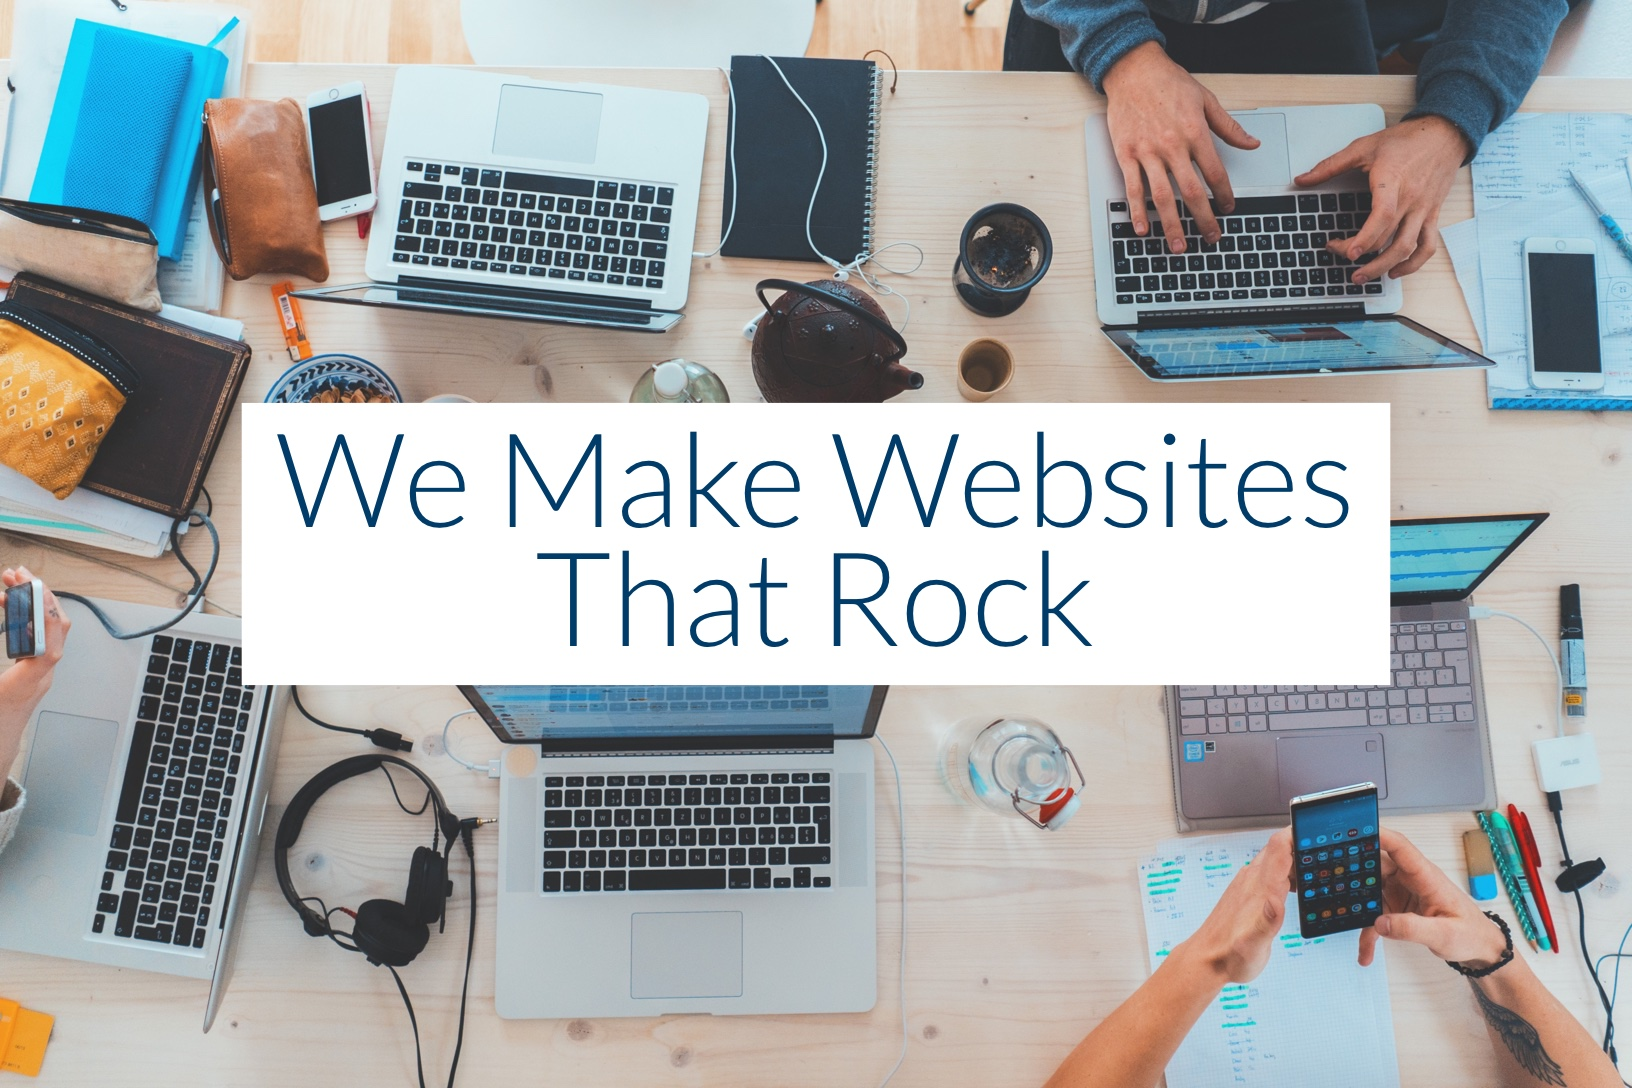 We make a new website for your business from scratch. No cookie cutter websites, outsourcing, or easy work here. Everything is done in-house. We focus on you.